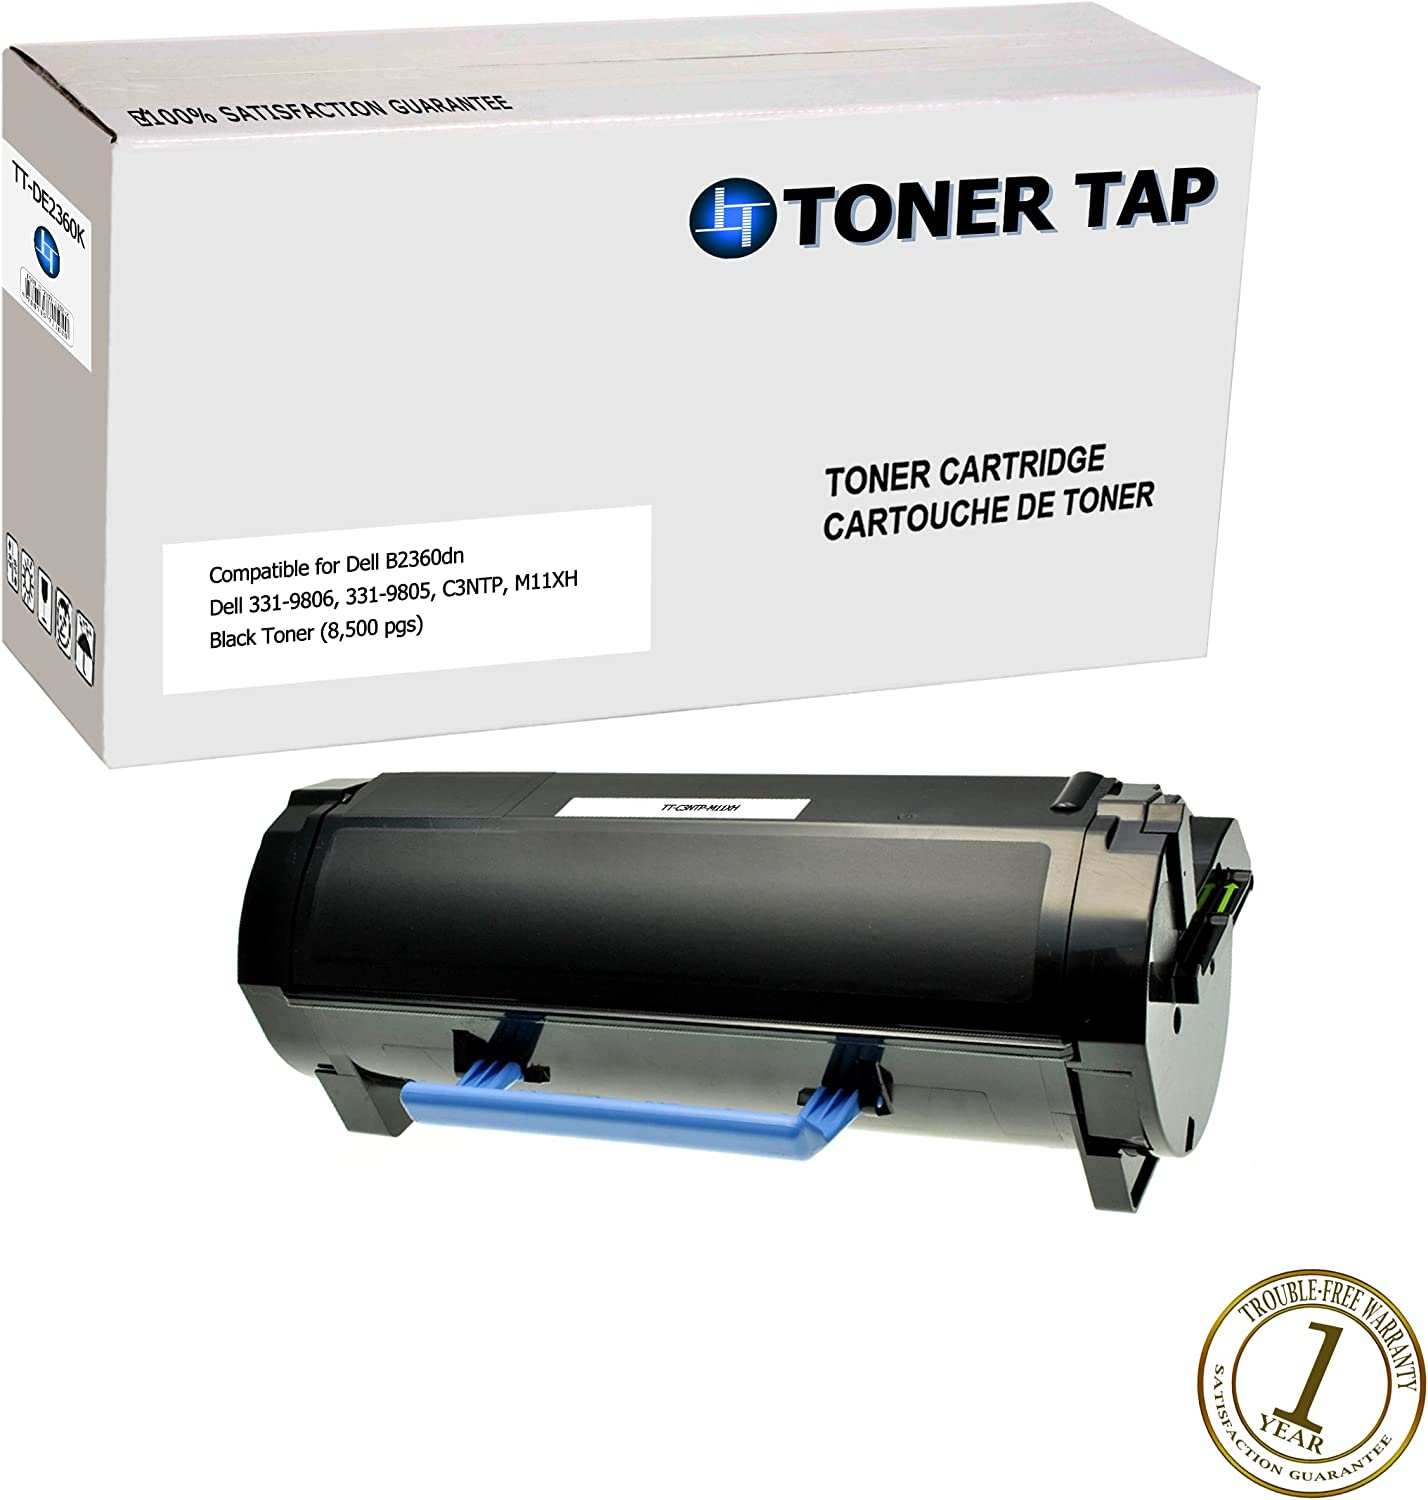 Toner Tap High Capacity Replacement Toner for Dell B2360, B3460, B3465 (8,500 pages), Compatible with Dell Part #'s Dell M11XH, 331-9806